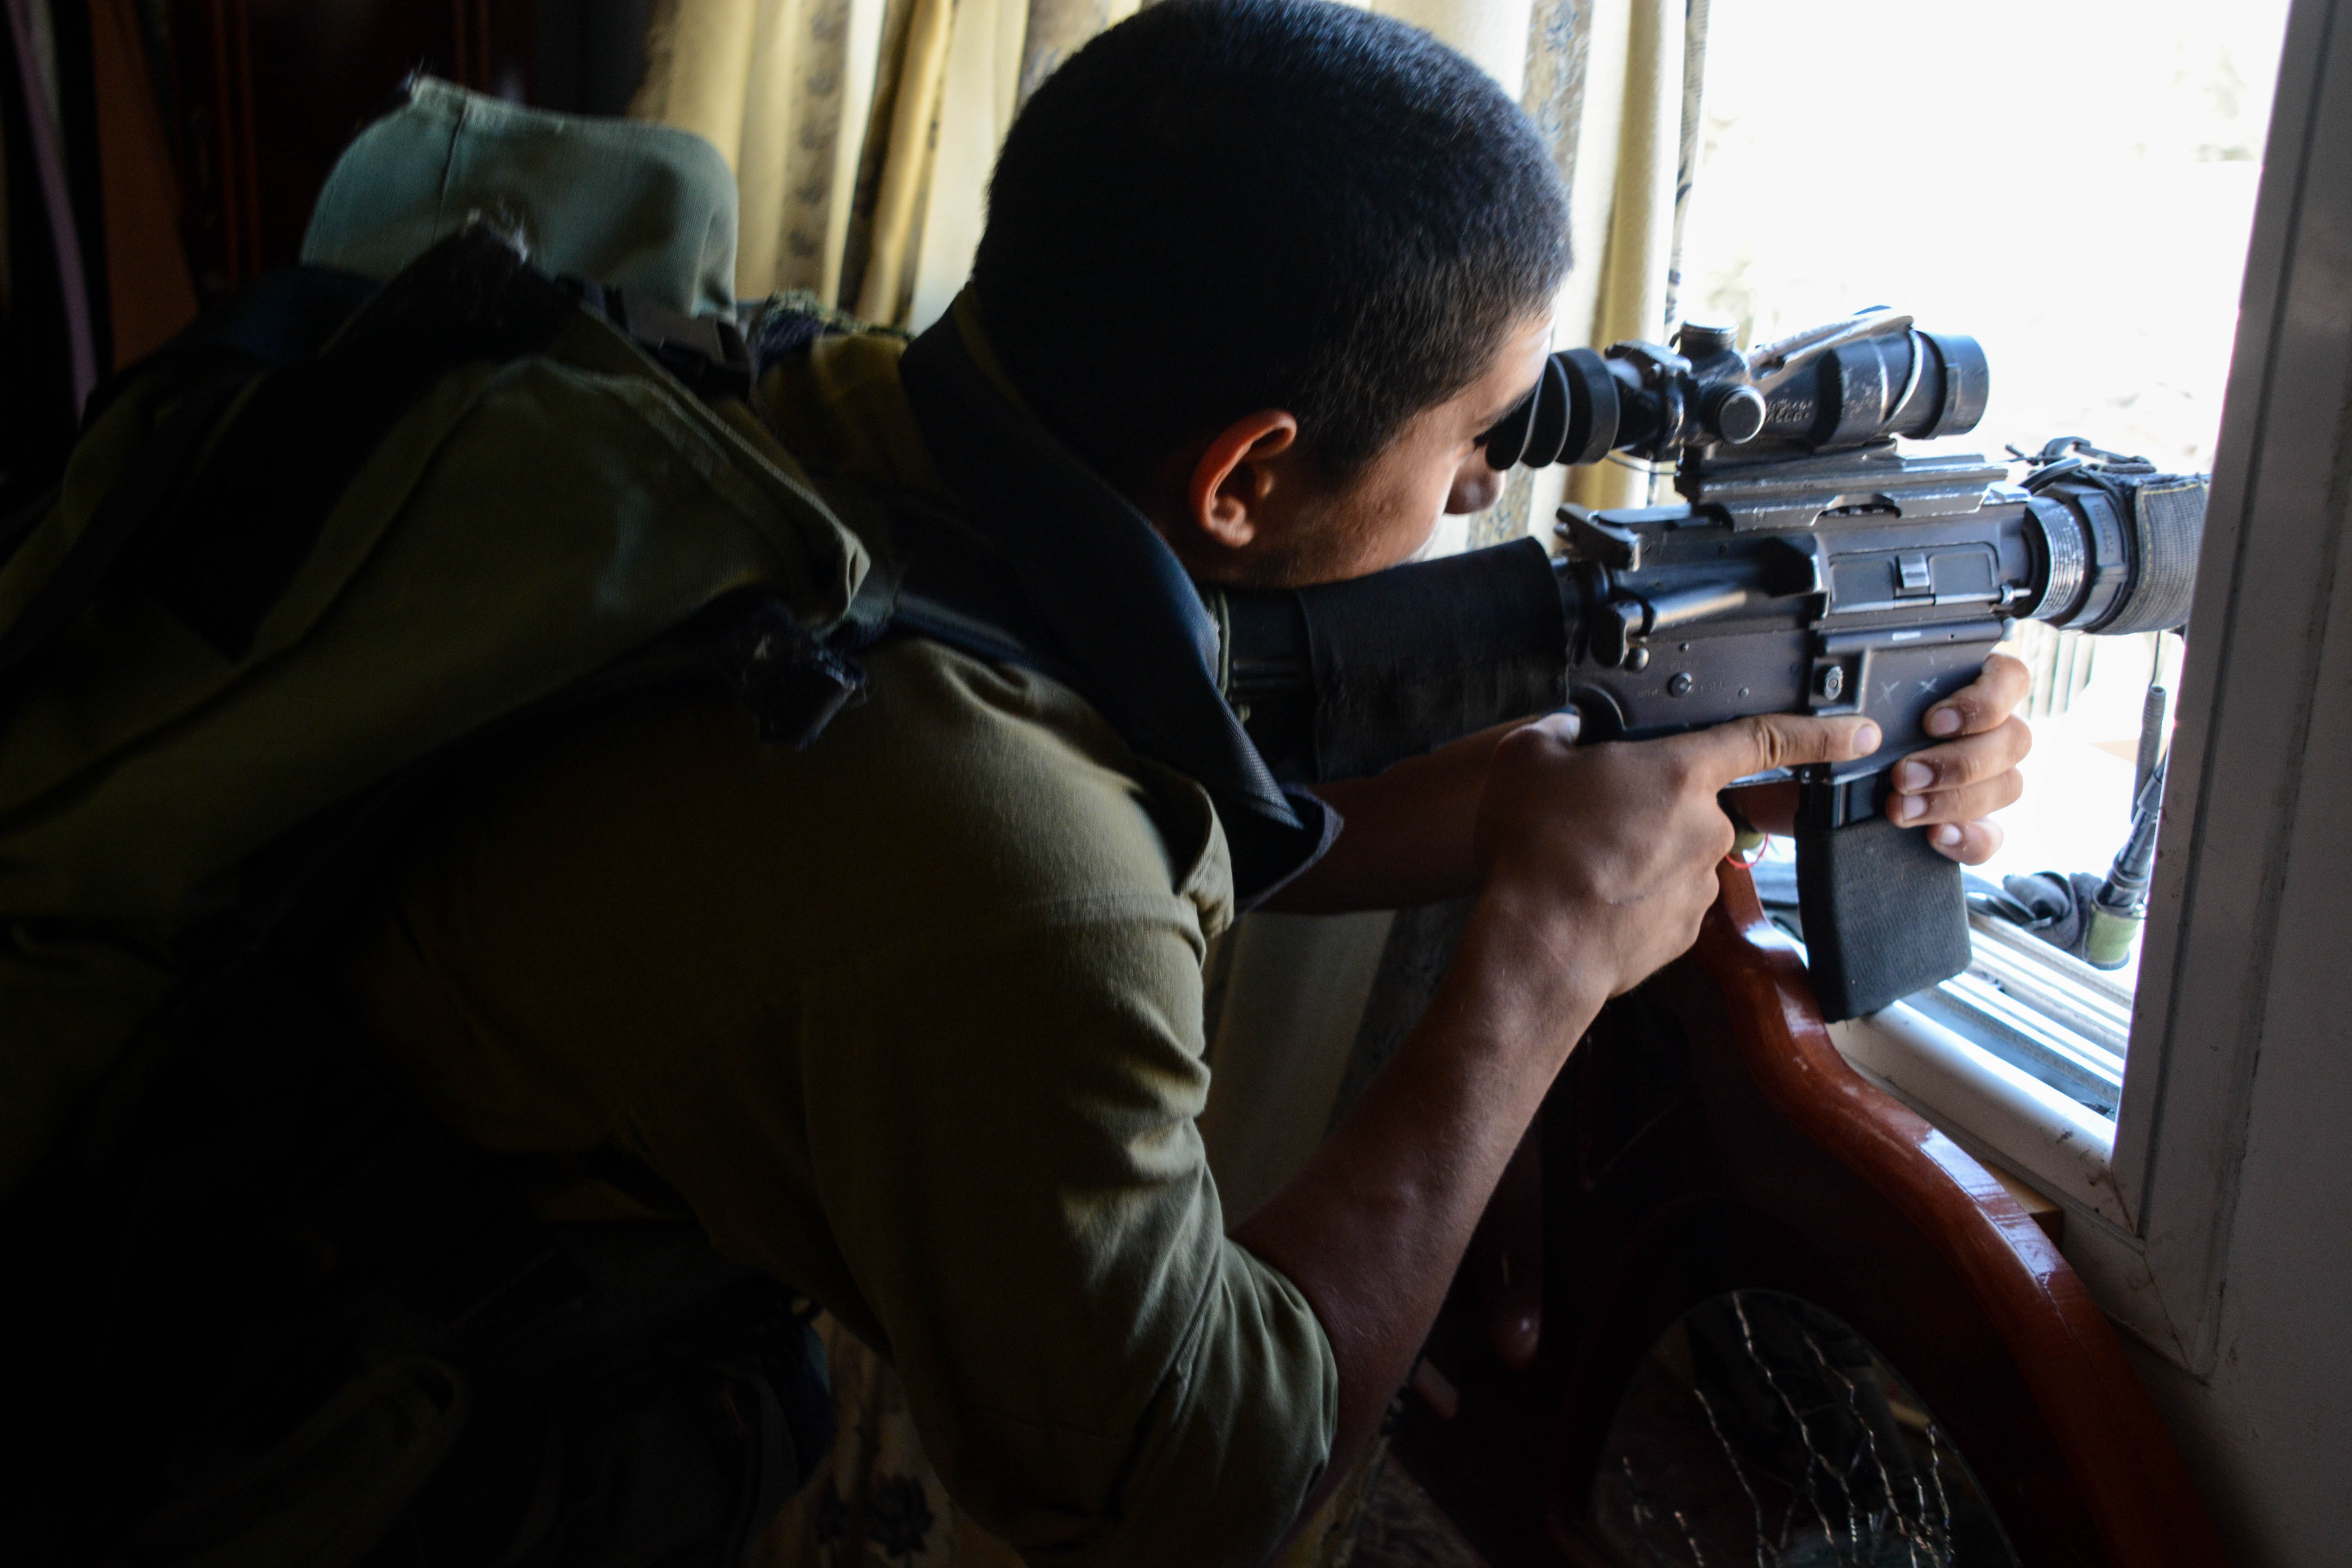 Essay Thesis Example An Israeli Paratrooper Takes Aim Inside A Gazan Building From The Idf  Flickr Page Science Essays Topics also Essays Term Papers Israel And Hamas Are Both Just Winging It  Political Violence At A  Example Of A Essay Paper